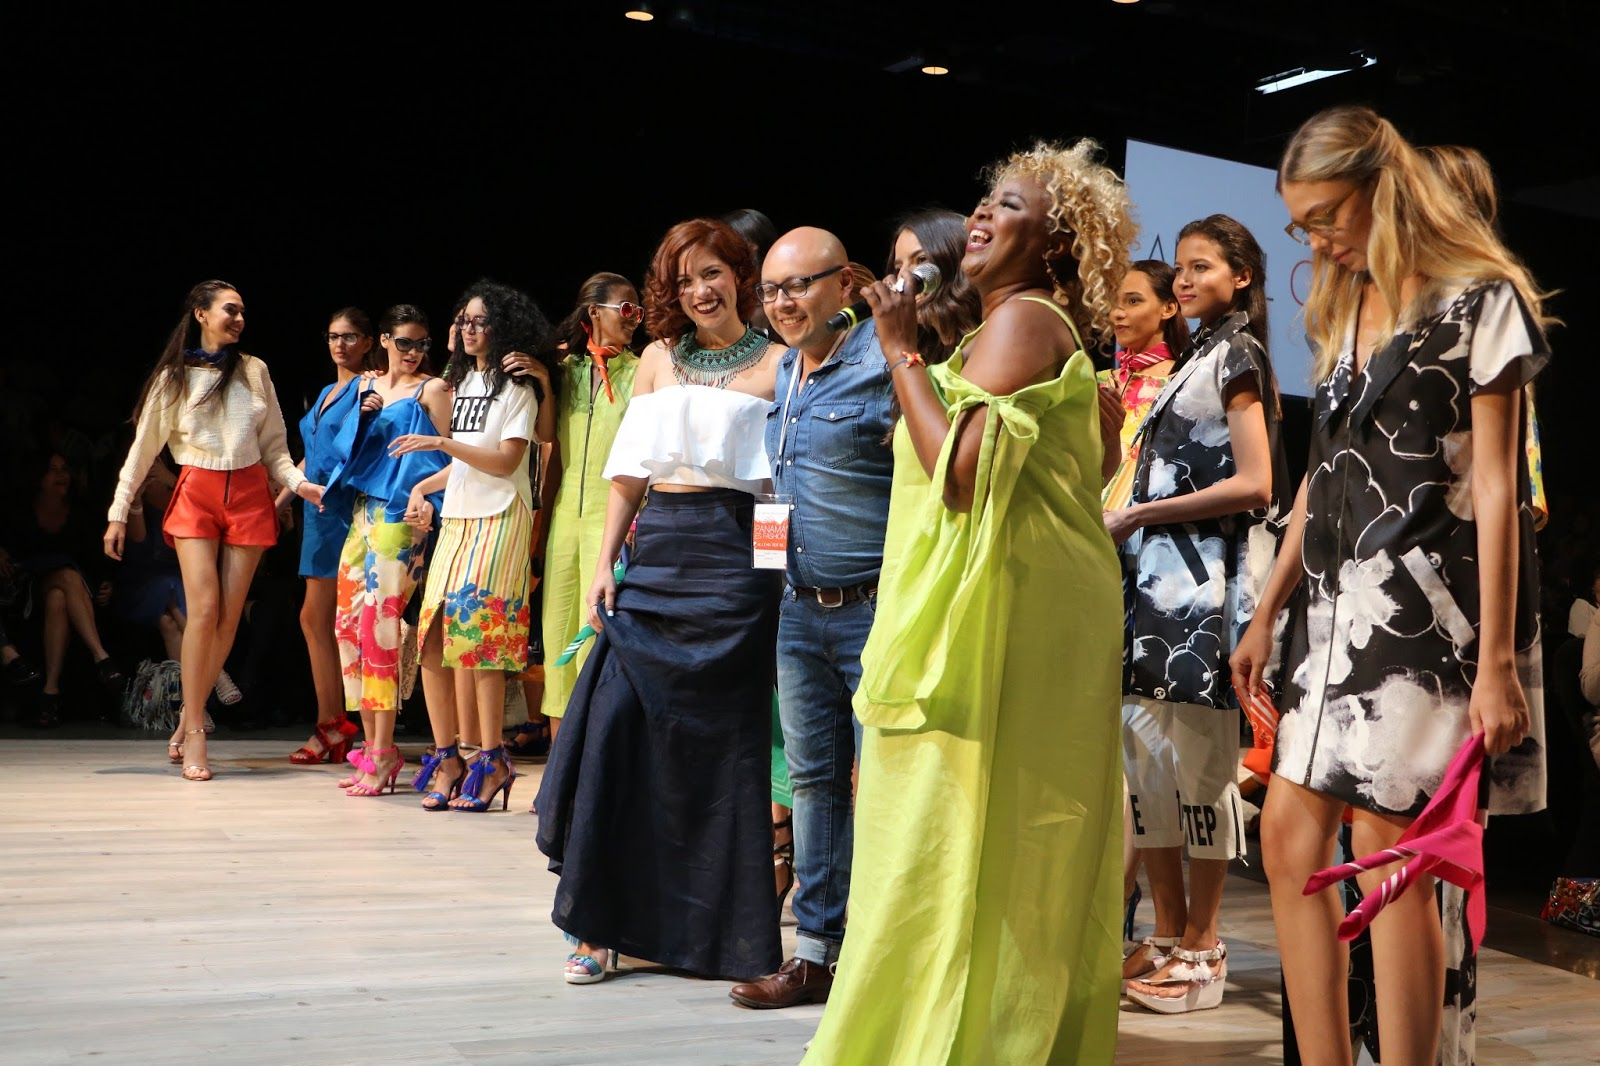 Click through to see more photos of Panama Fashion Week 2016